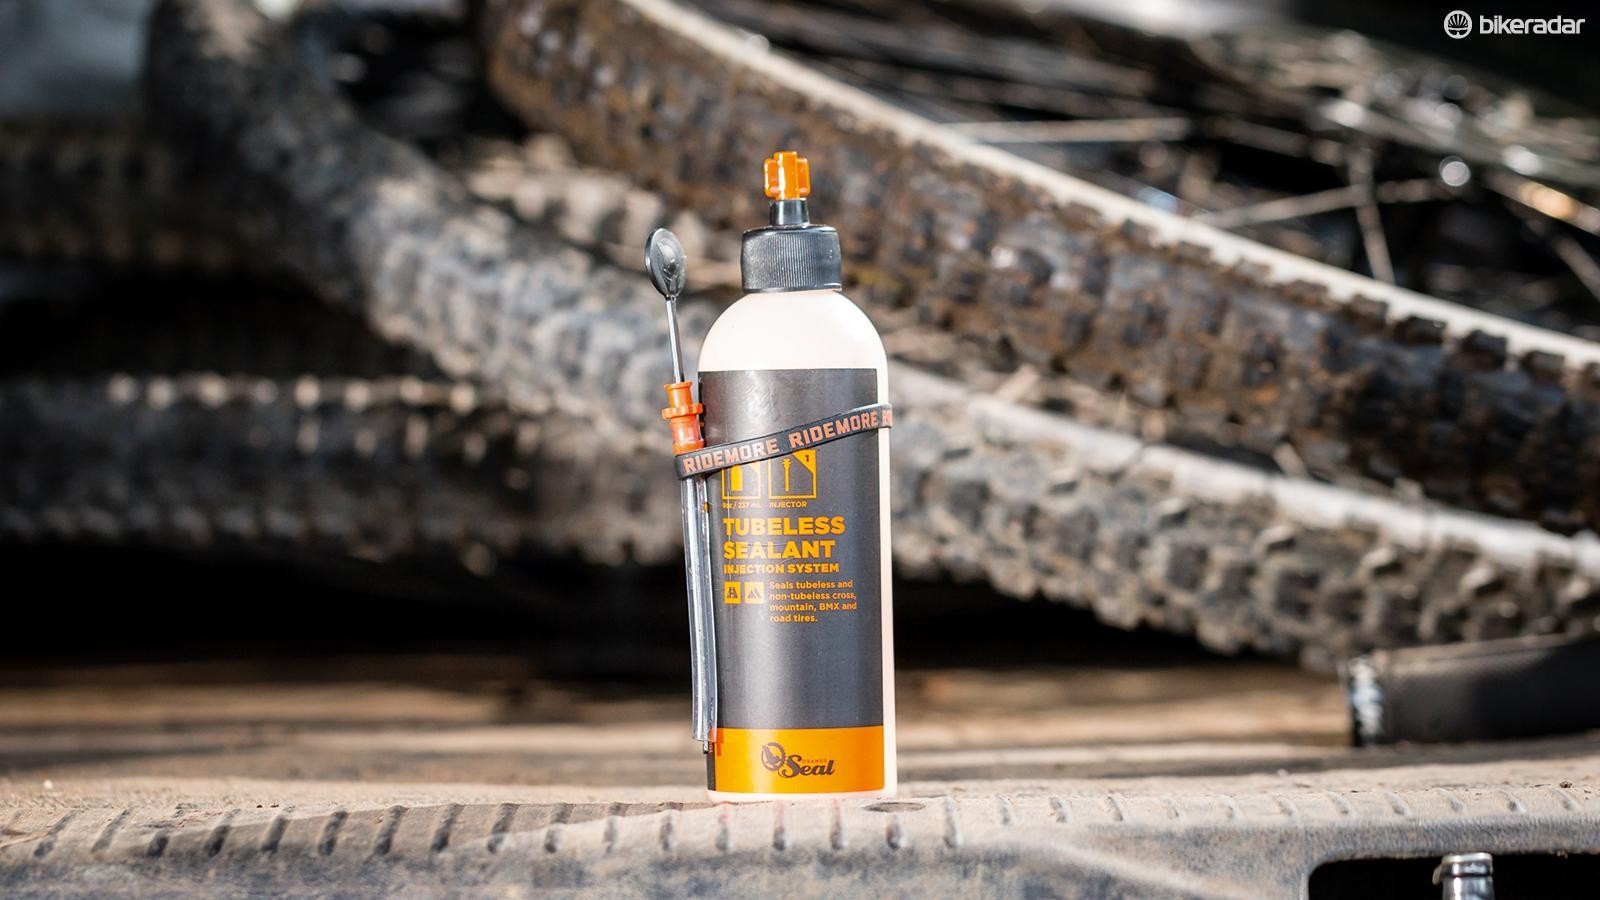 Orange Seal has become my go-to tubeless sealant